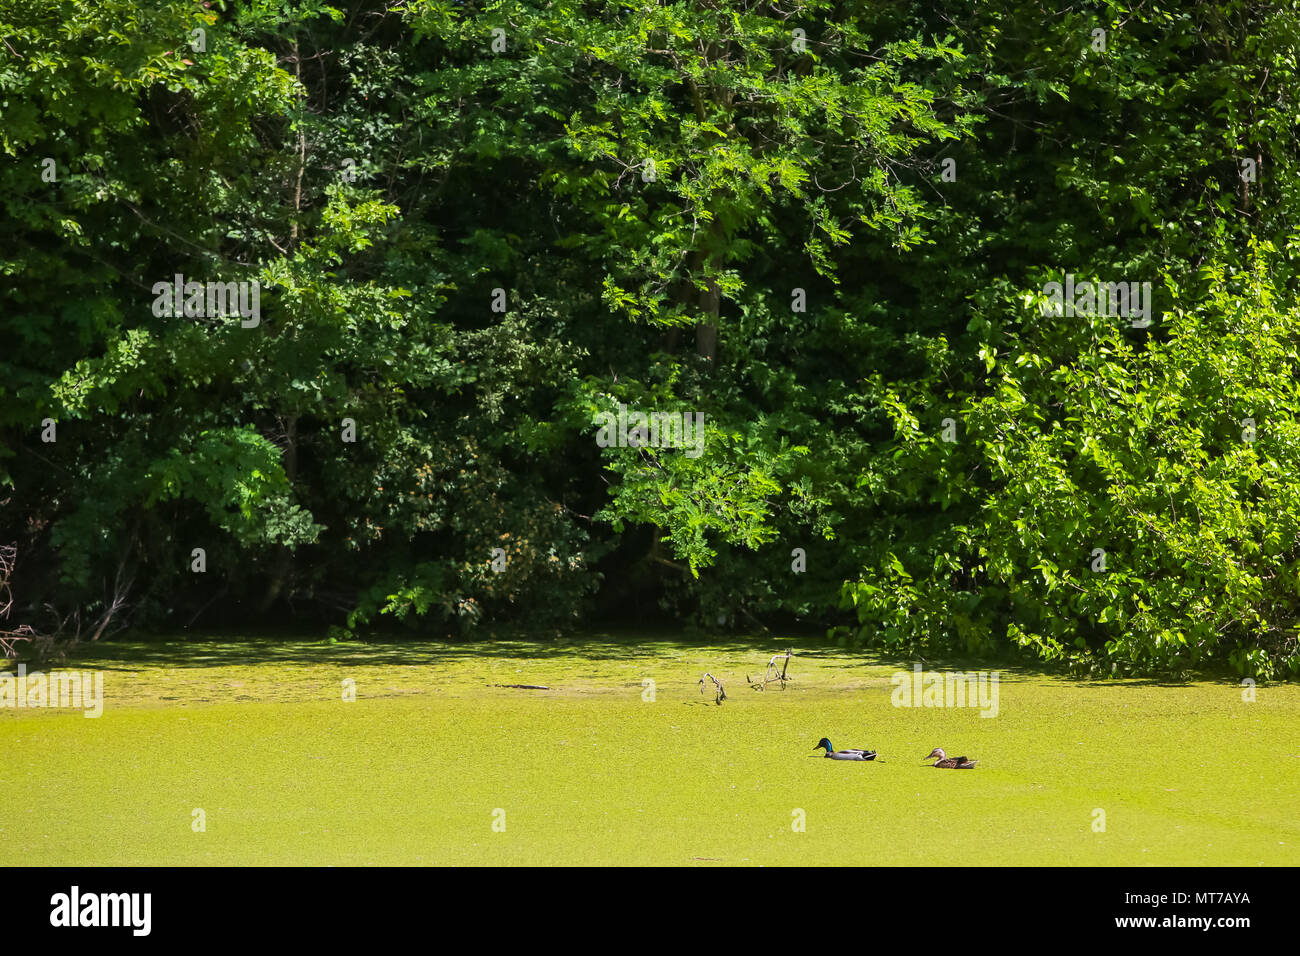 A view of two ducks swimming in the green river Bosut covered with algal blooms in Vinkovci, Croatia. - Stock Image